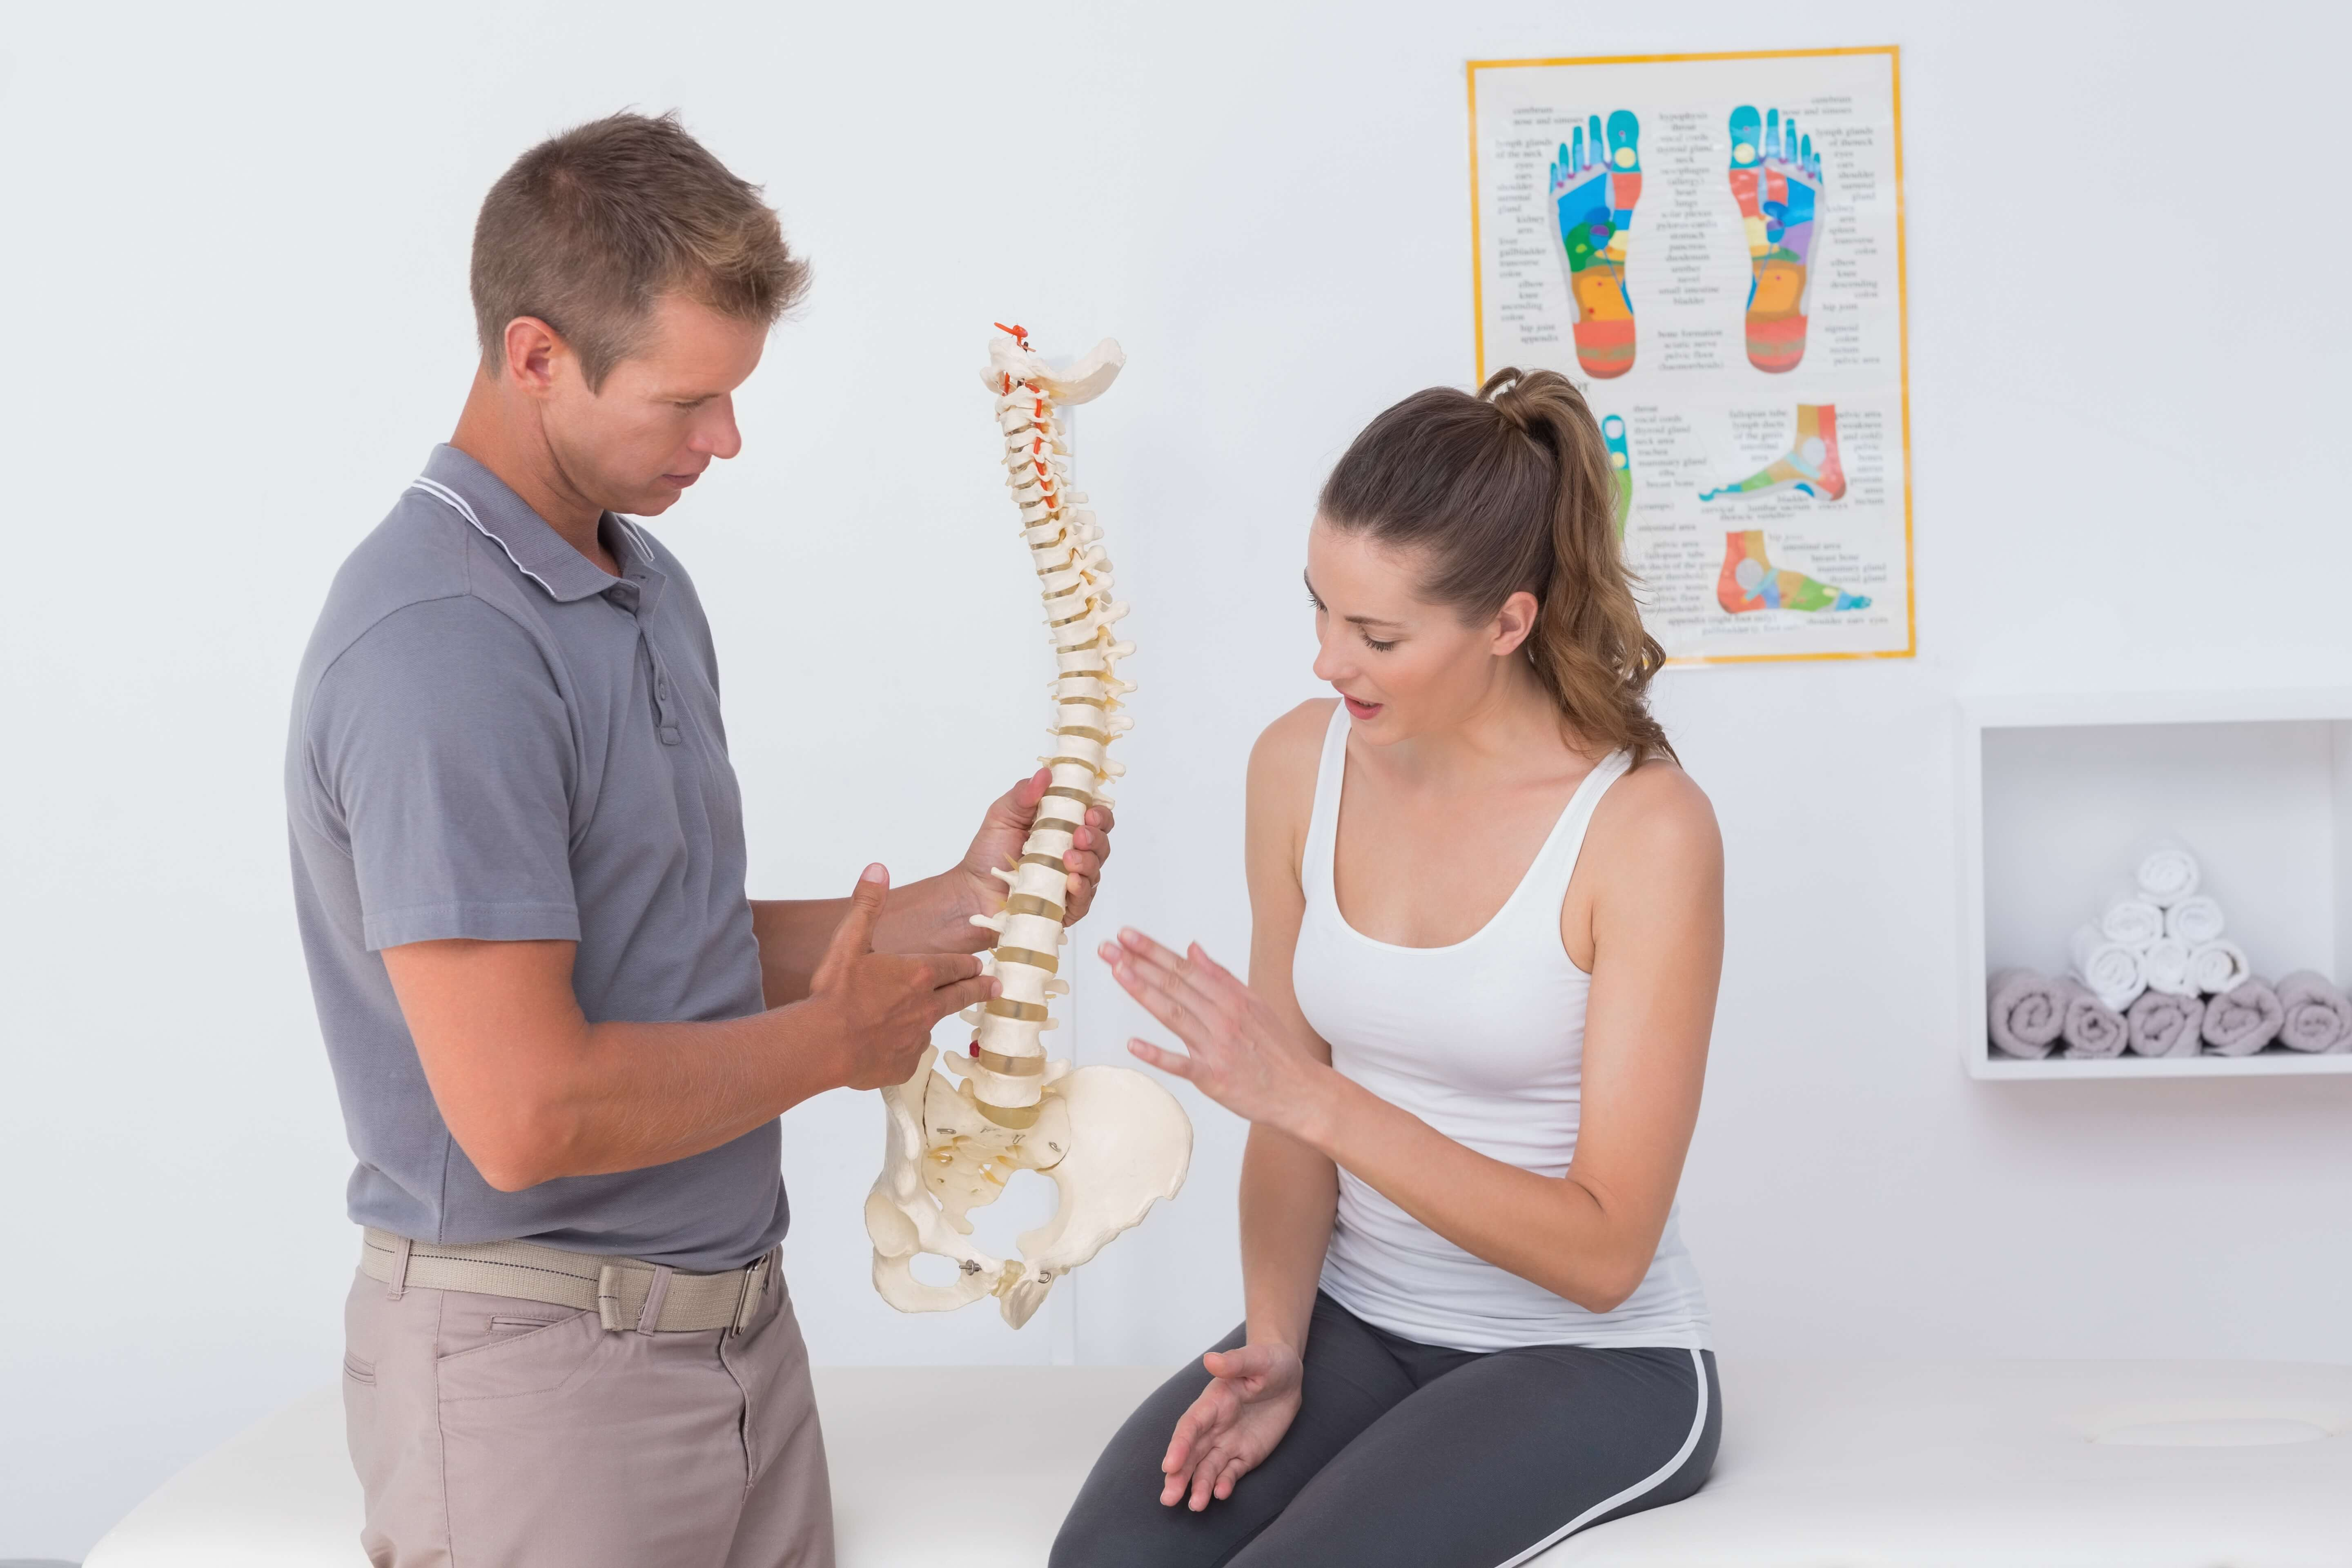 herniated discs may be causing your back pain